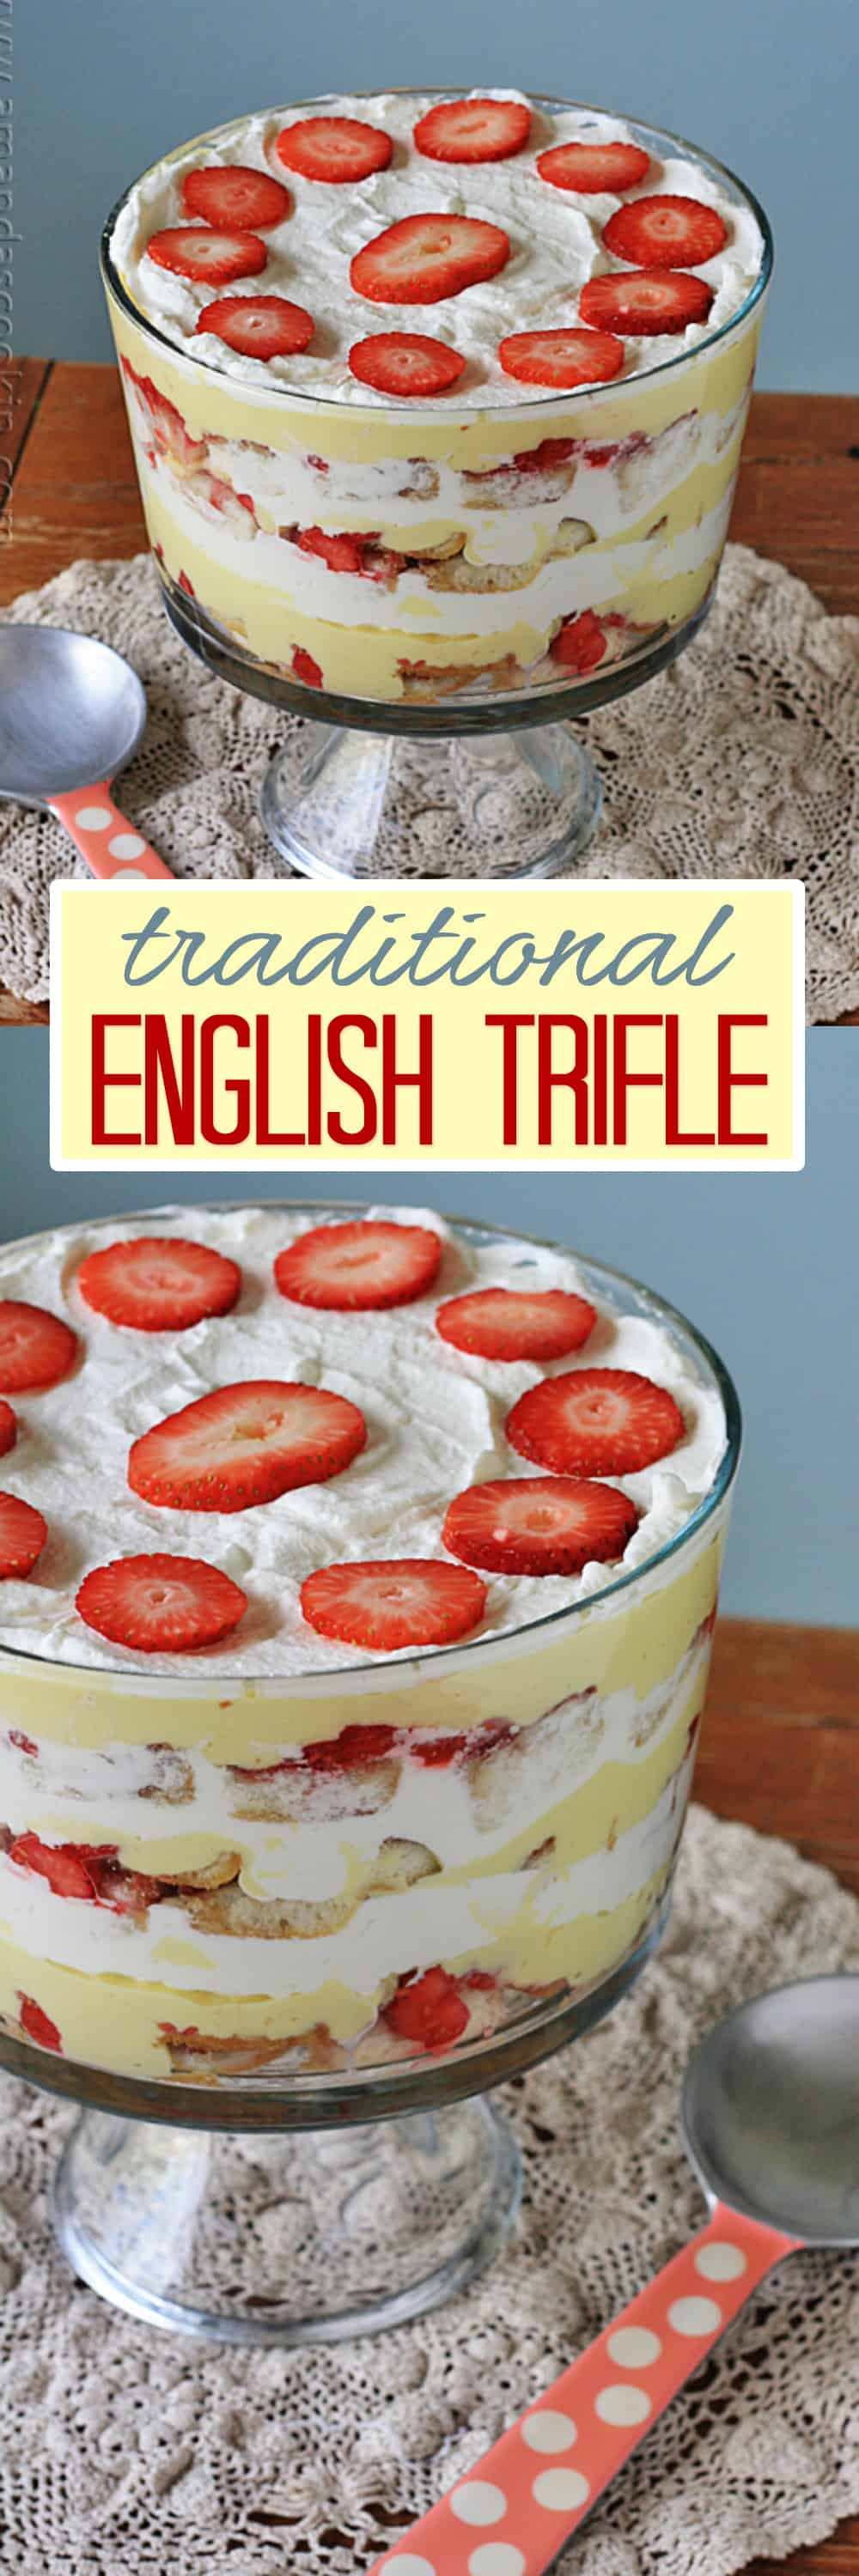 Traditional English Christmas Desserts  English Trifle Our Family Tradition Amanda s Cookin